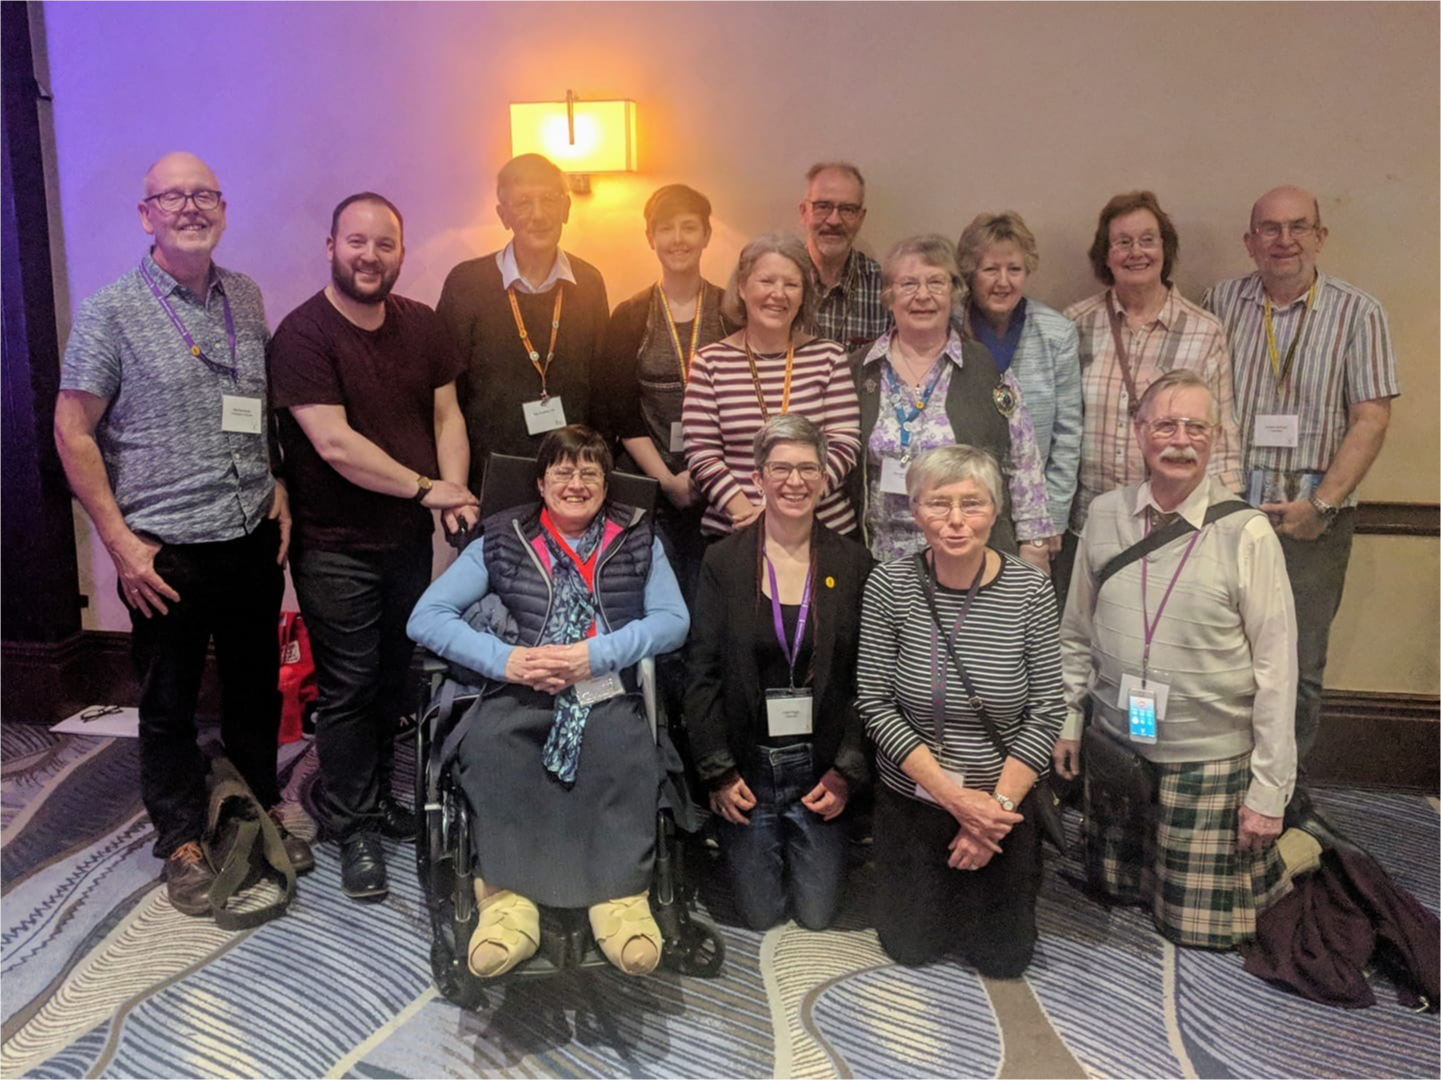 The Annual Meeting of the General Assembly of Unitarian and Free Christian Churches was held this year from 16 to 18 April in Birmingham. Nine members from St Mark's attended, including our minister Rev Peter Fairbrother. Jane Aaronson, Kate Foggo, Lesley Hartley and Rodger Hartley reflect on what they found when they went to Birmingham...